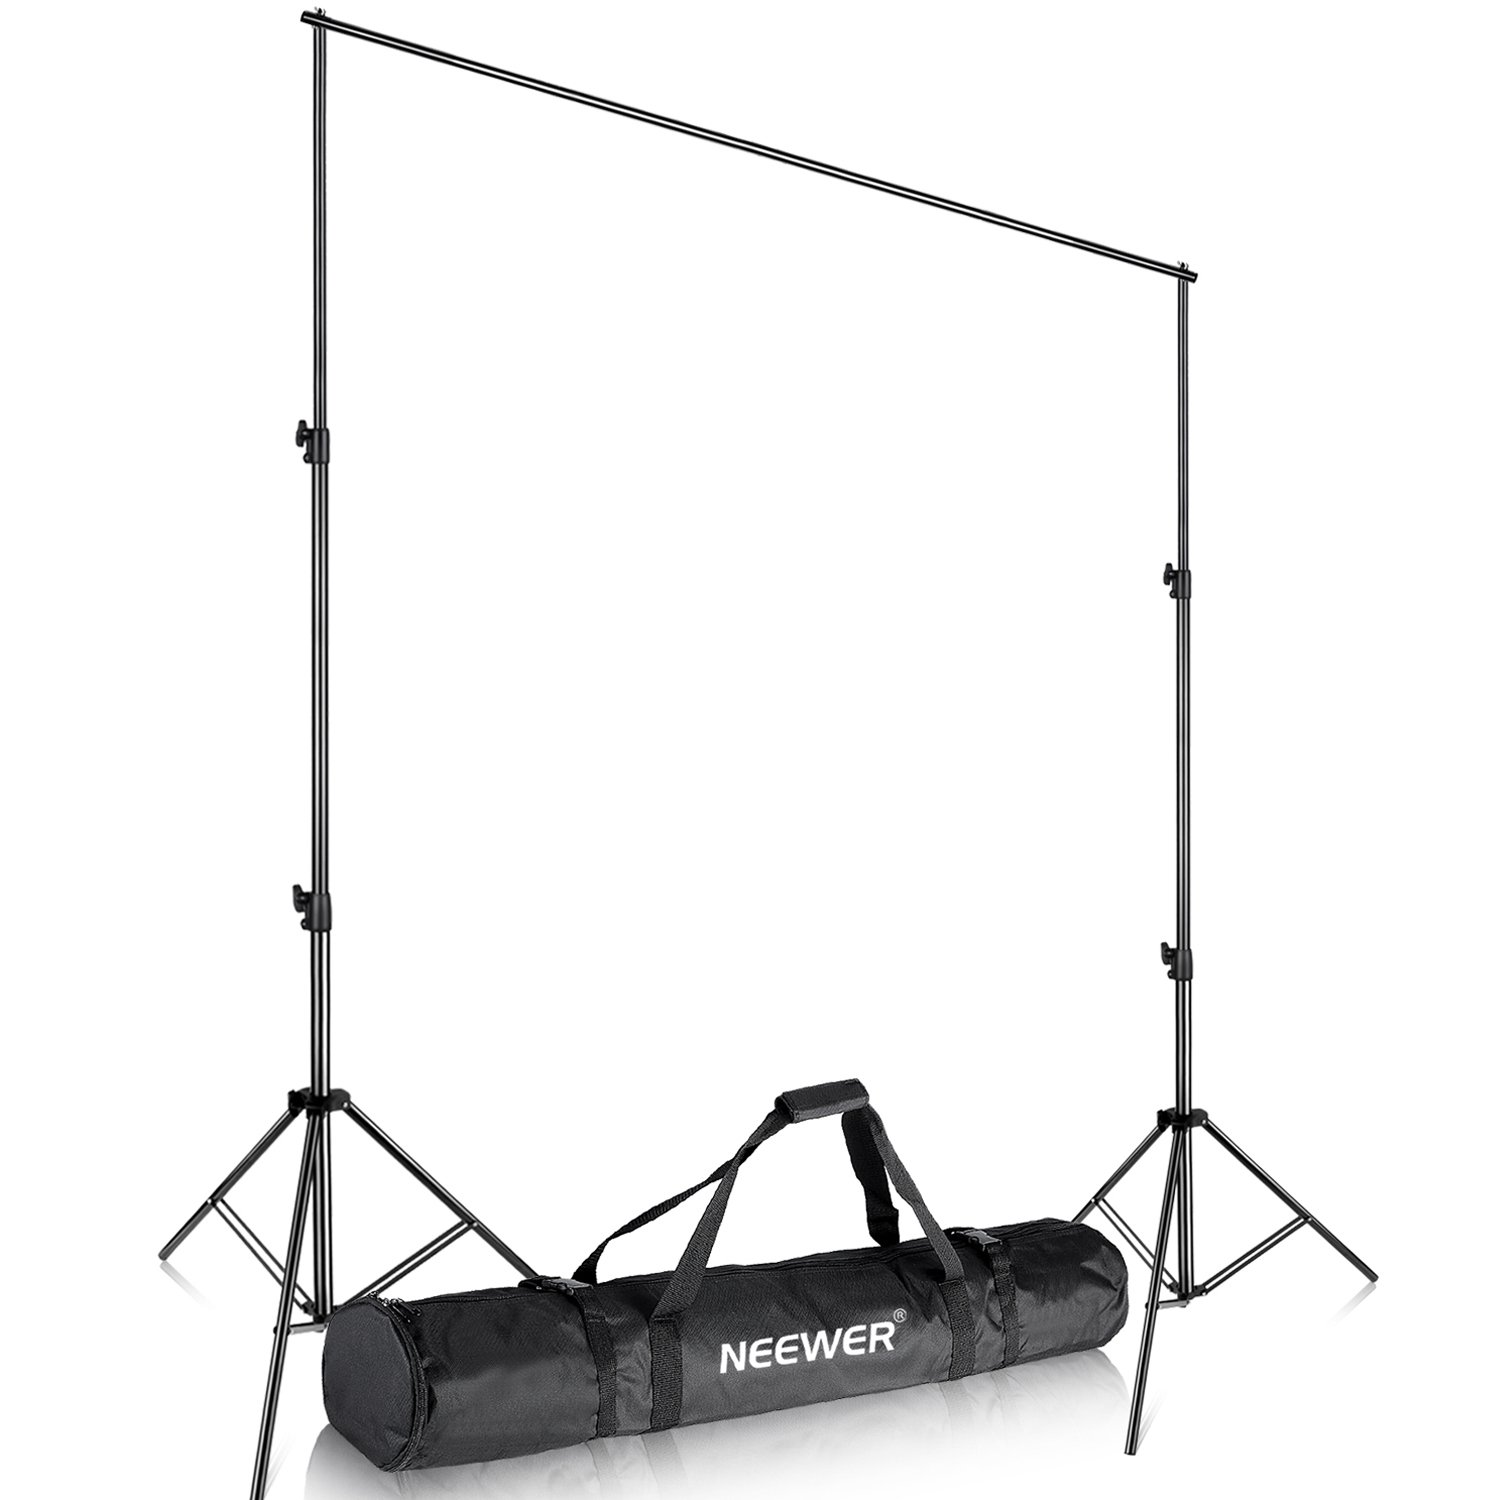 Neewer® Background Stand Support System 2.6M x 3M/8.5ft x 10ft Kit with Carrying Case for Muslins Backdrops, Paper and Canvas